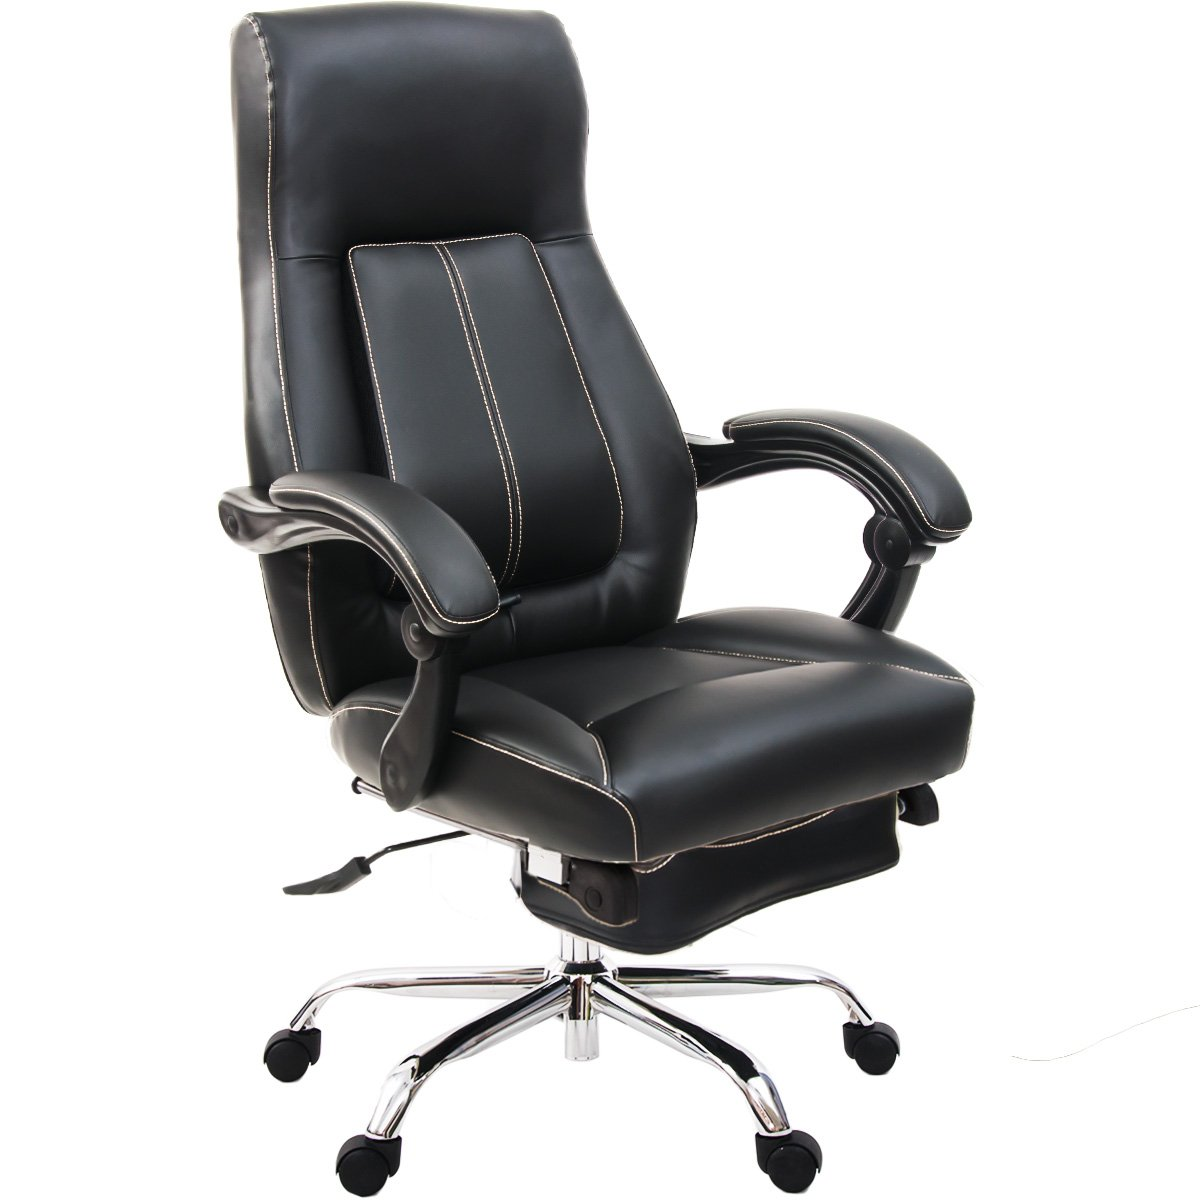 ModernLuxe Inno Series High Back Leather Executive Swivel Home Office Chair with Adjustable Pivoting Lumbar and Footrest (Black)